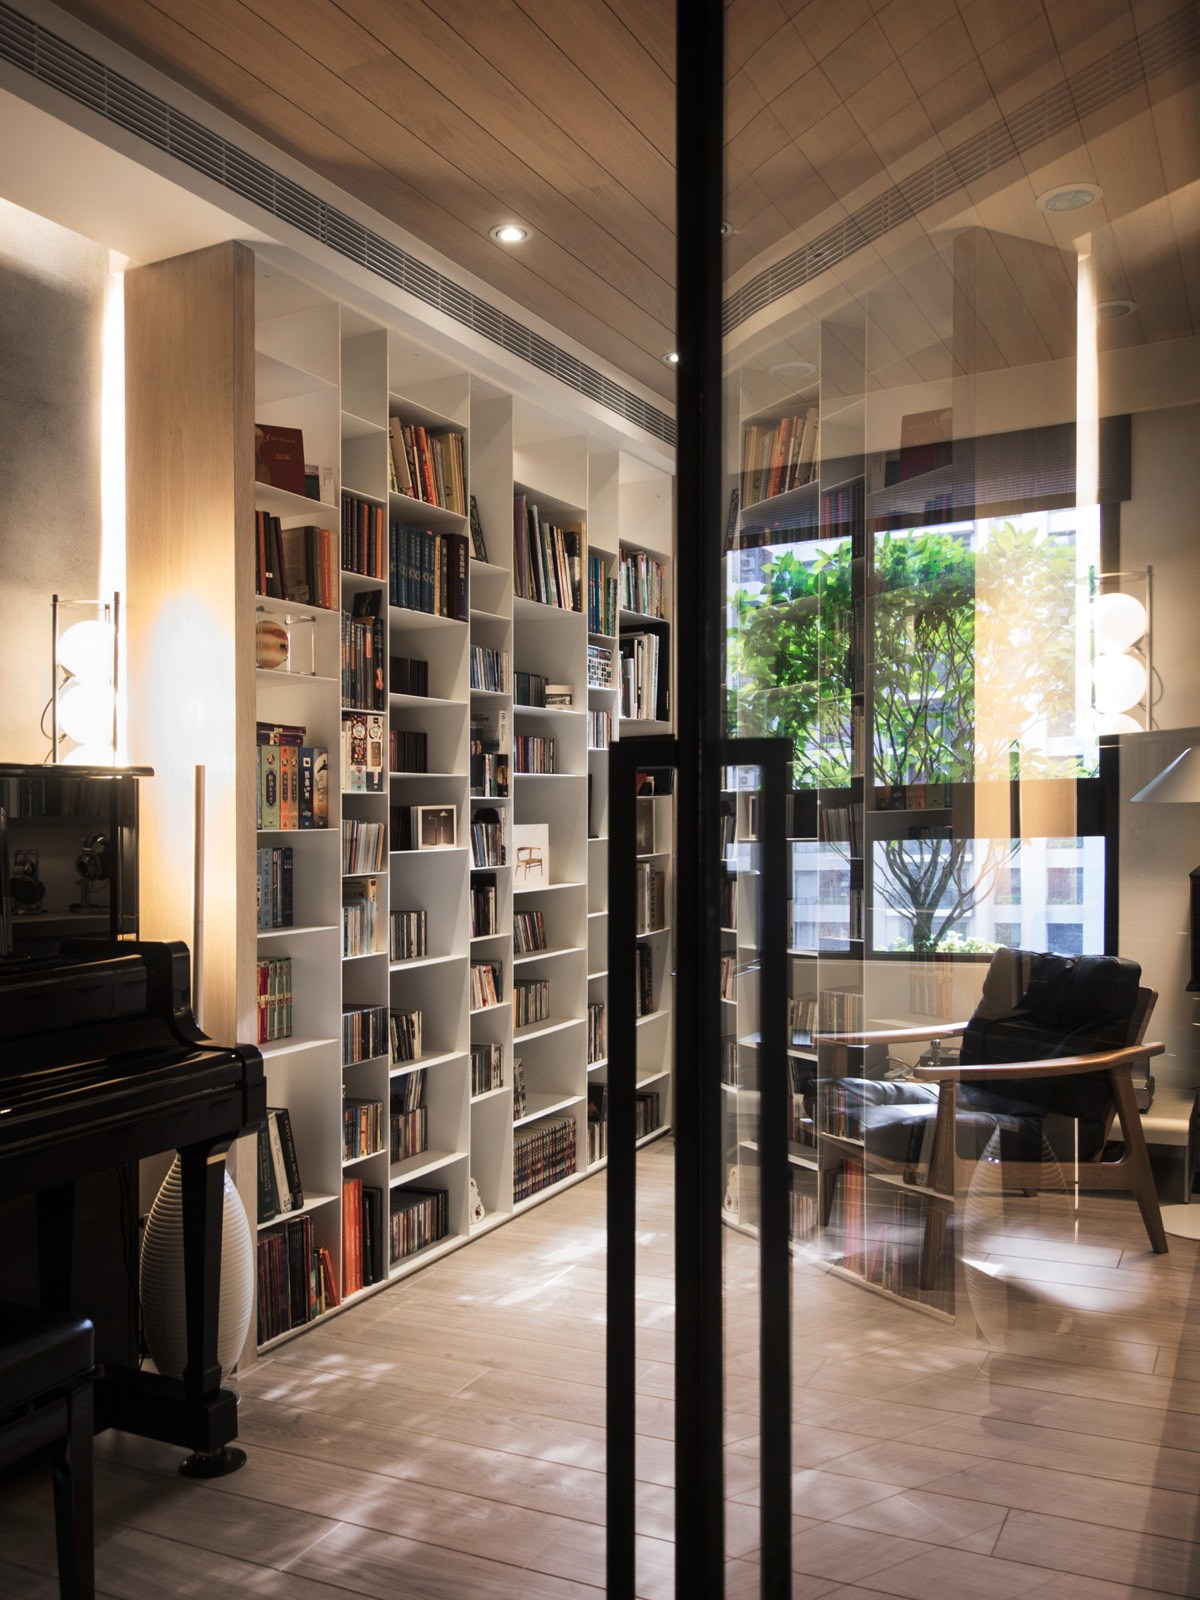 Reading Room Design Ideas: A Warm Wood Home In Taiwan With A Beautiful Cozy Reading Nook